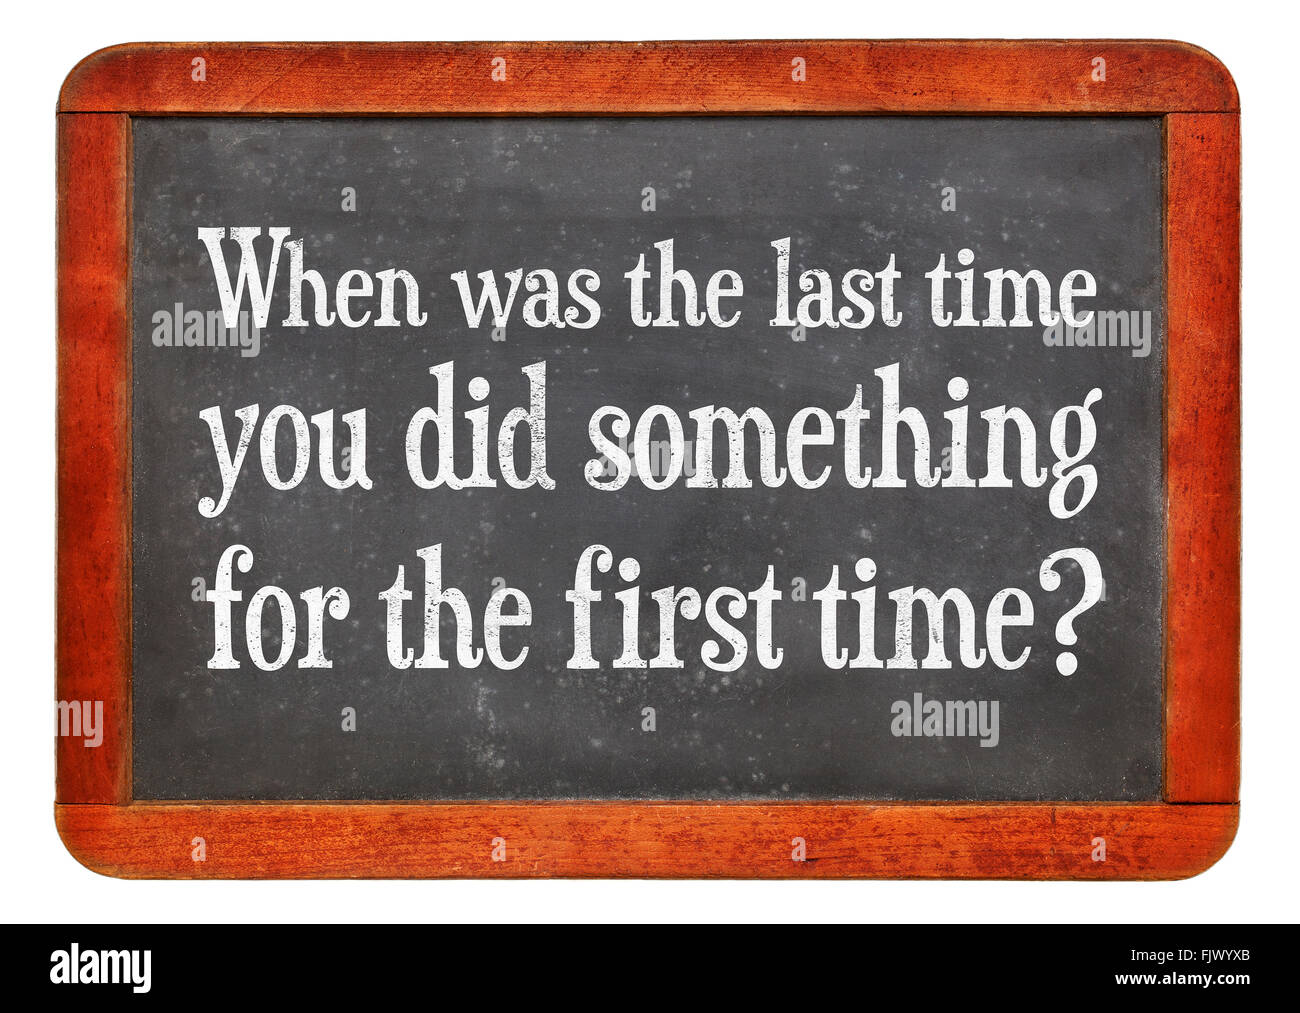 When was last time you did something for the first time? A question on a vintage slate blackboard - Stock Image